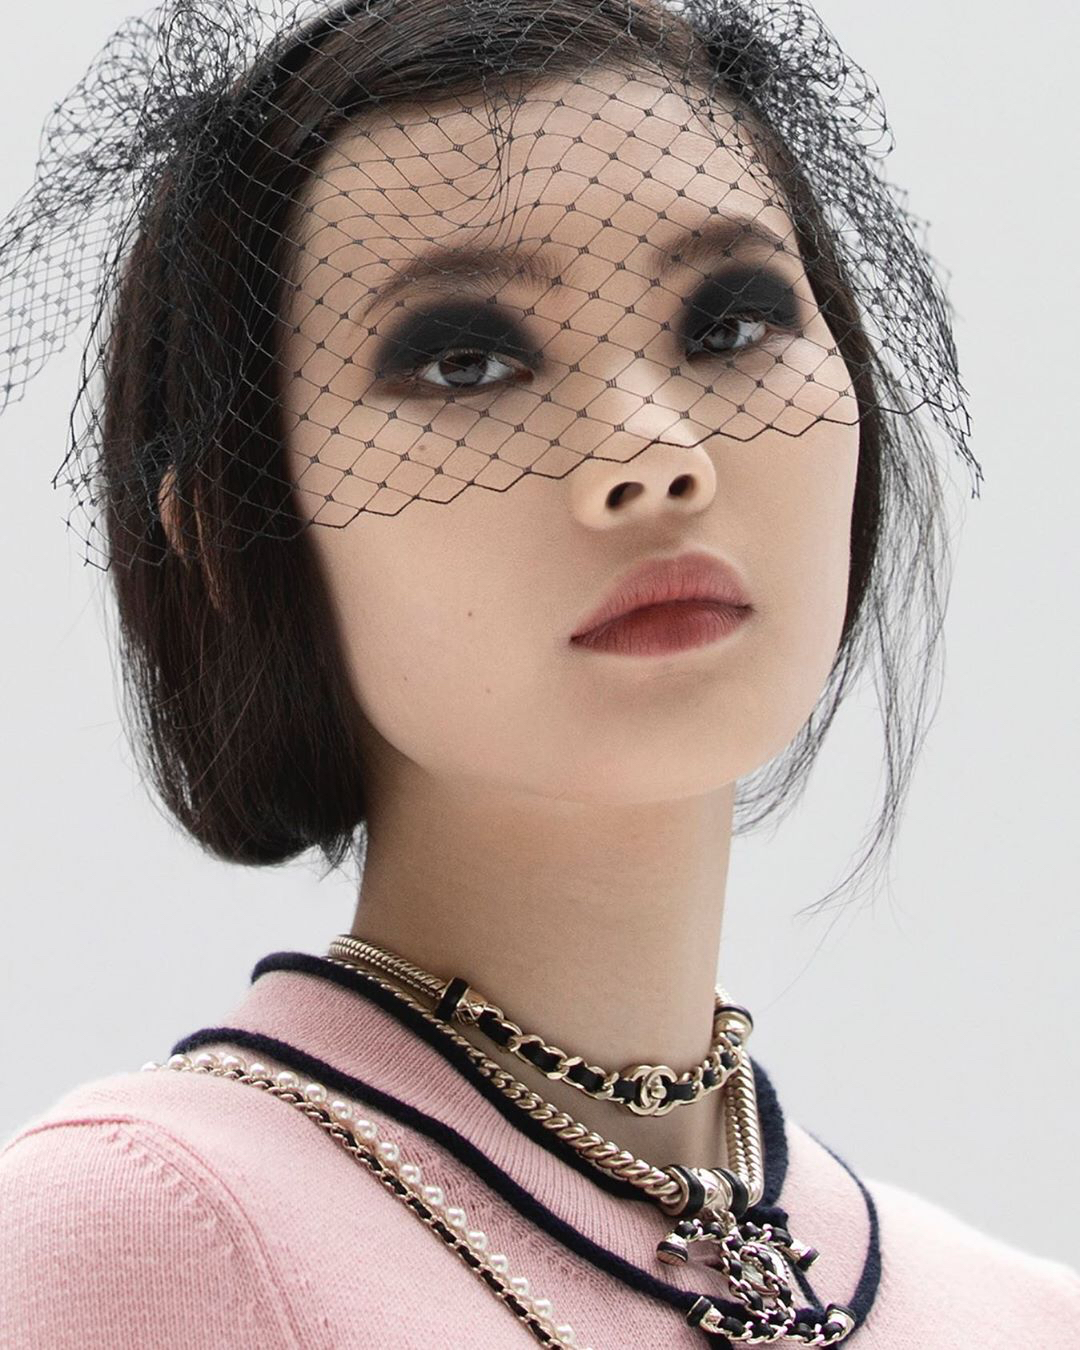 chanel spring summer 2021 beauty look